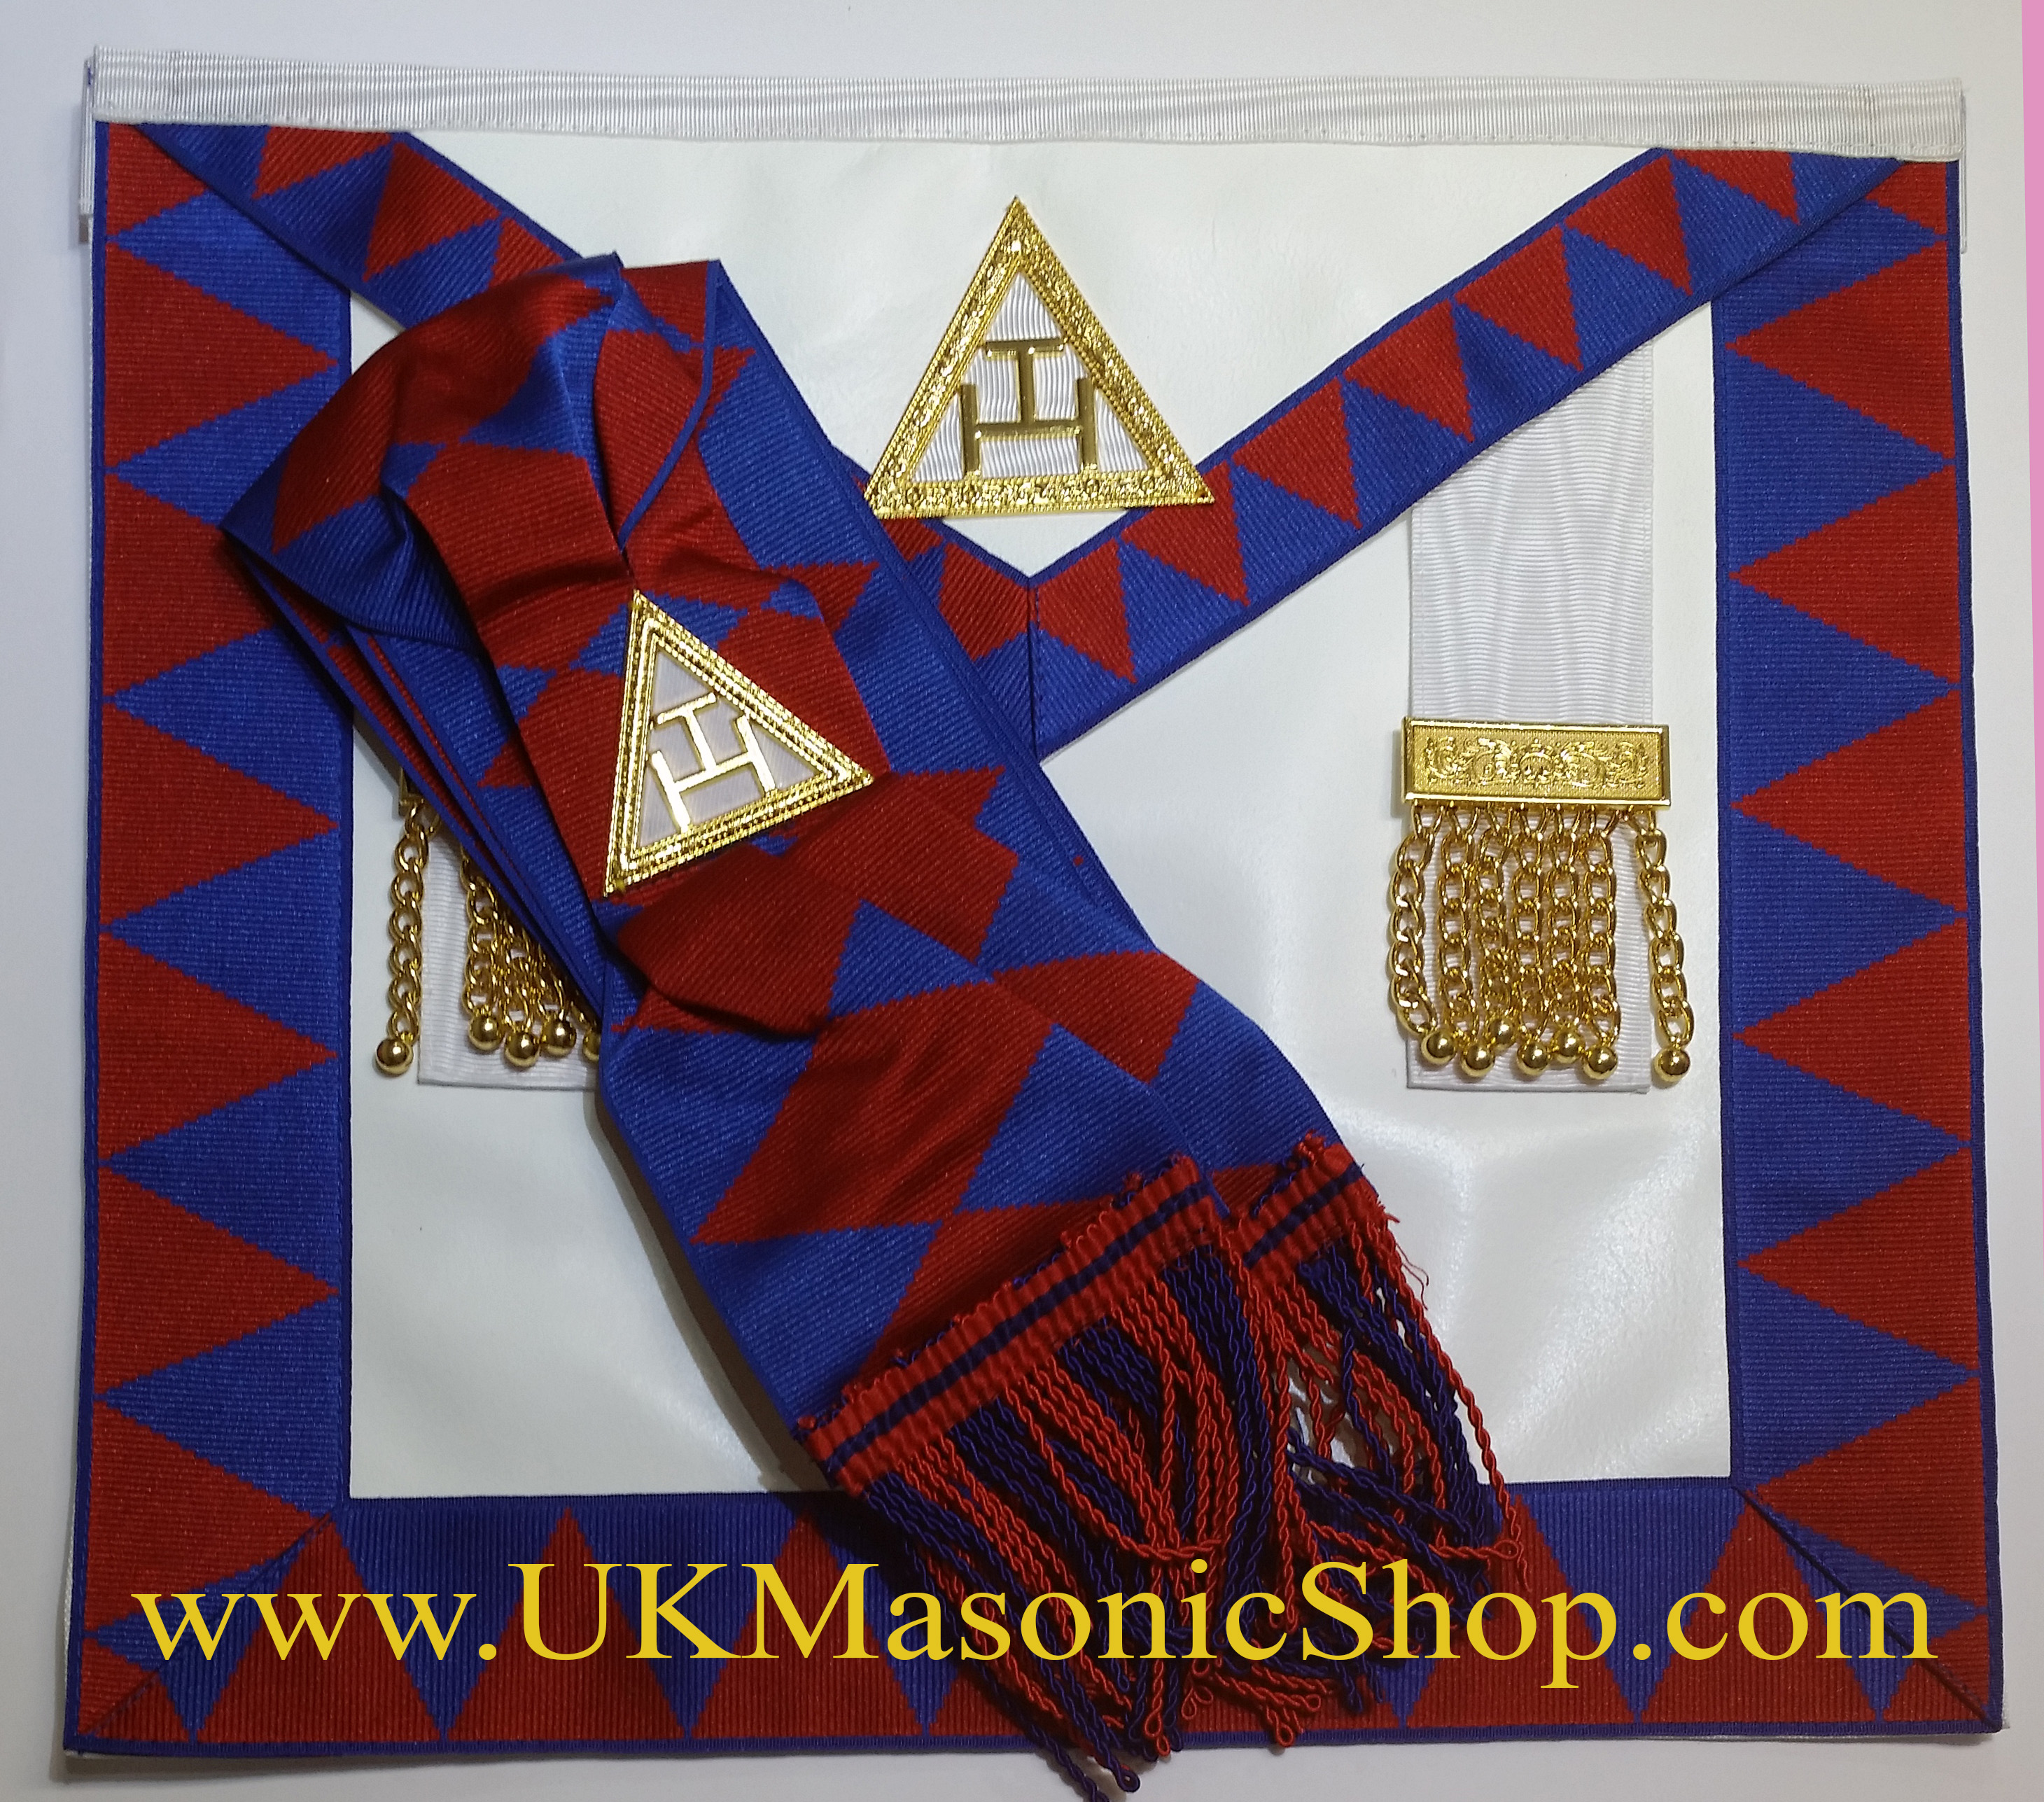 Companions Leather Apron & Sash